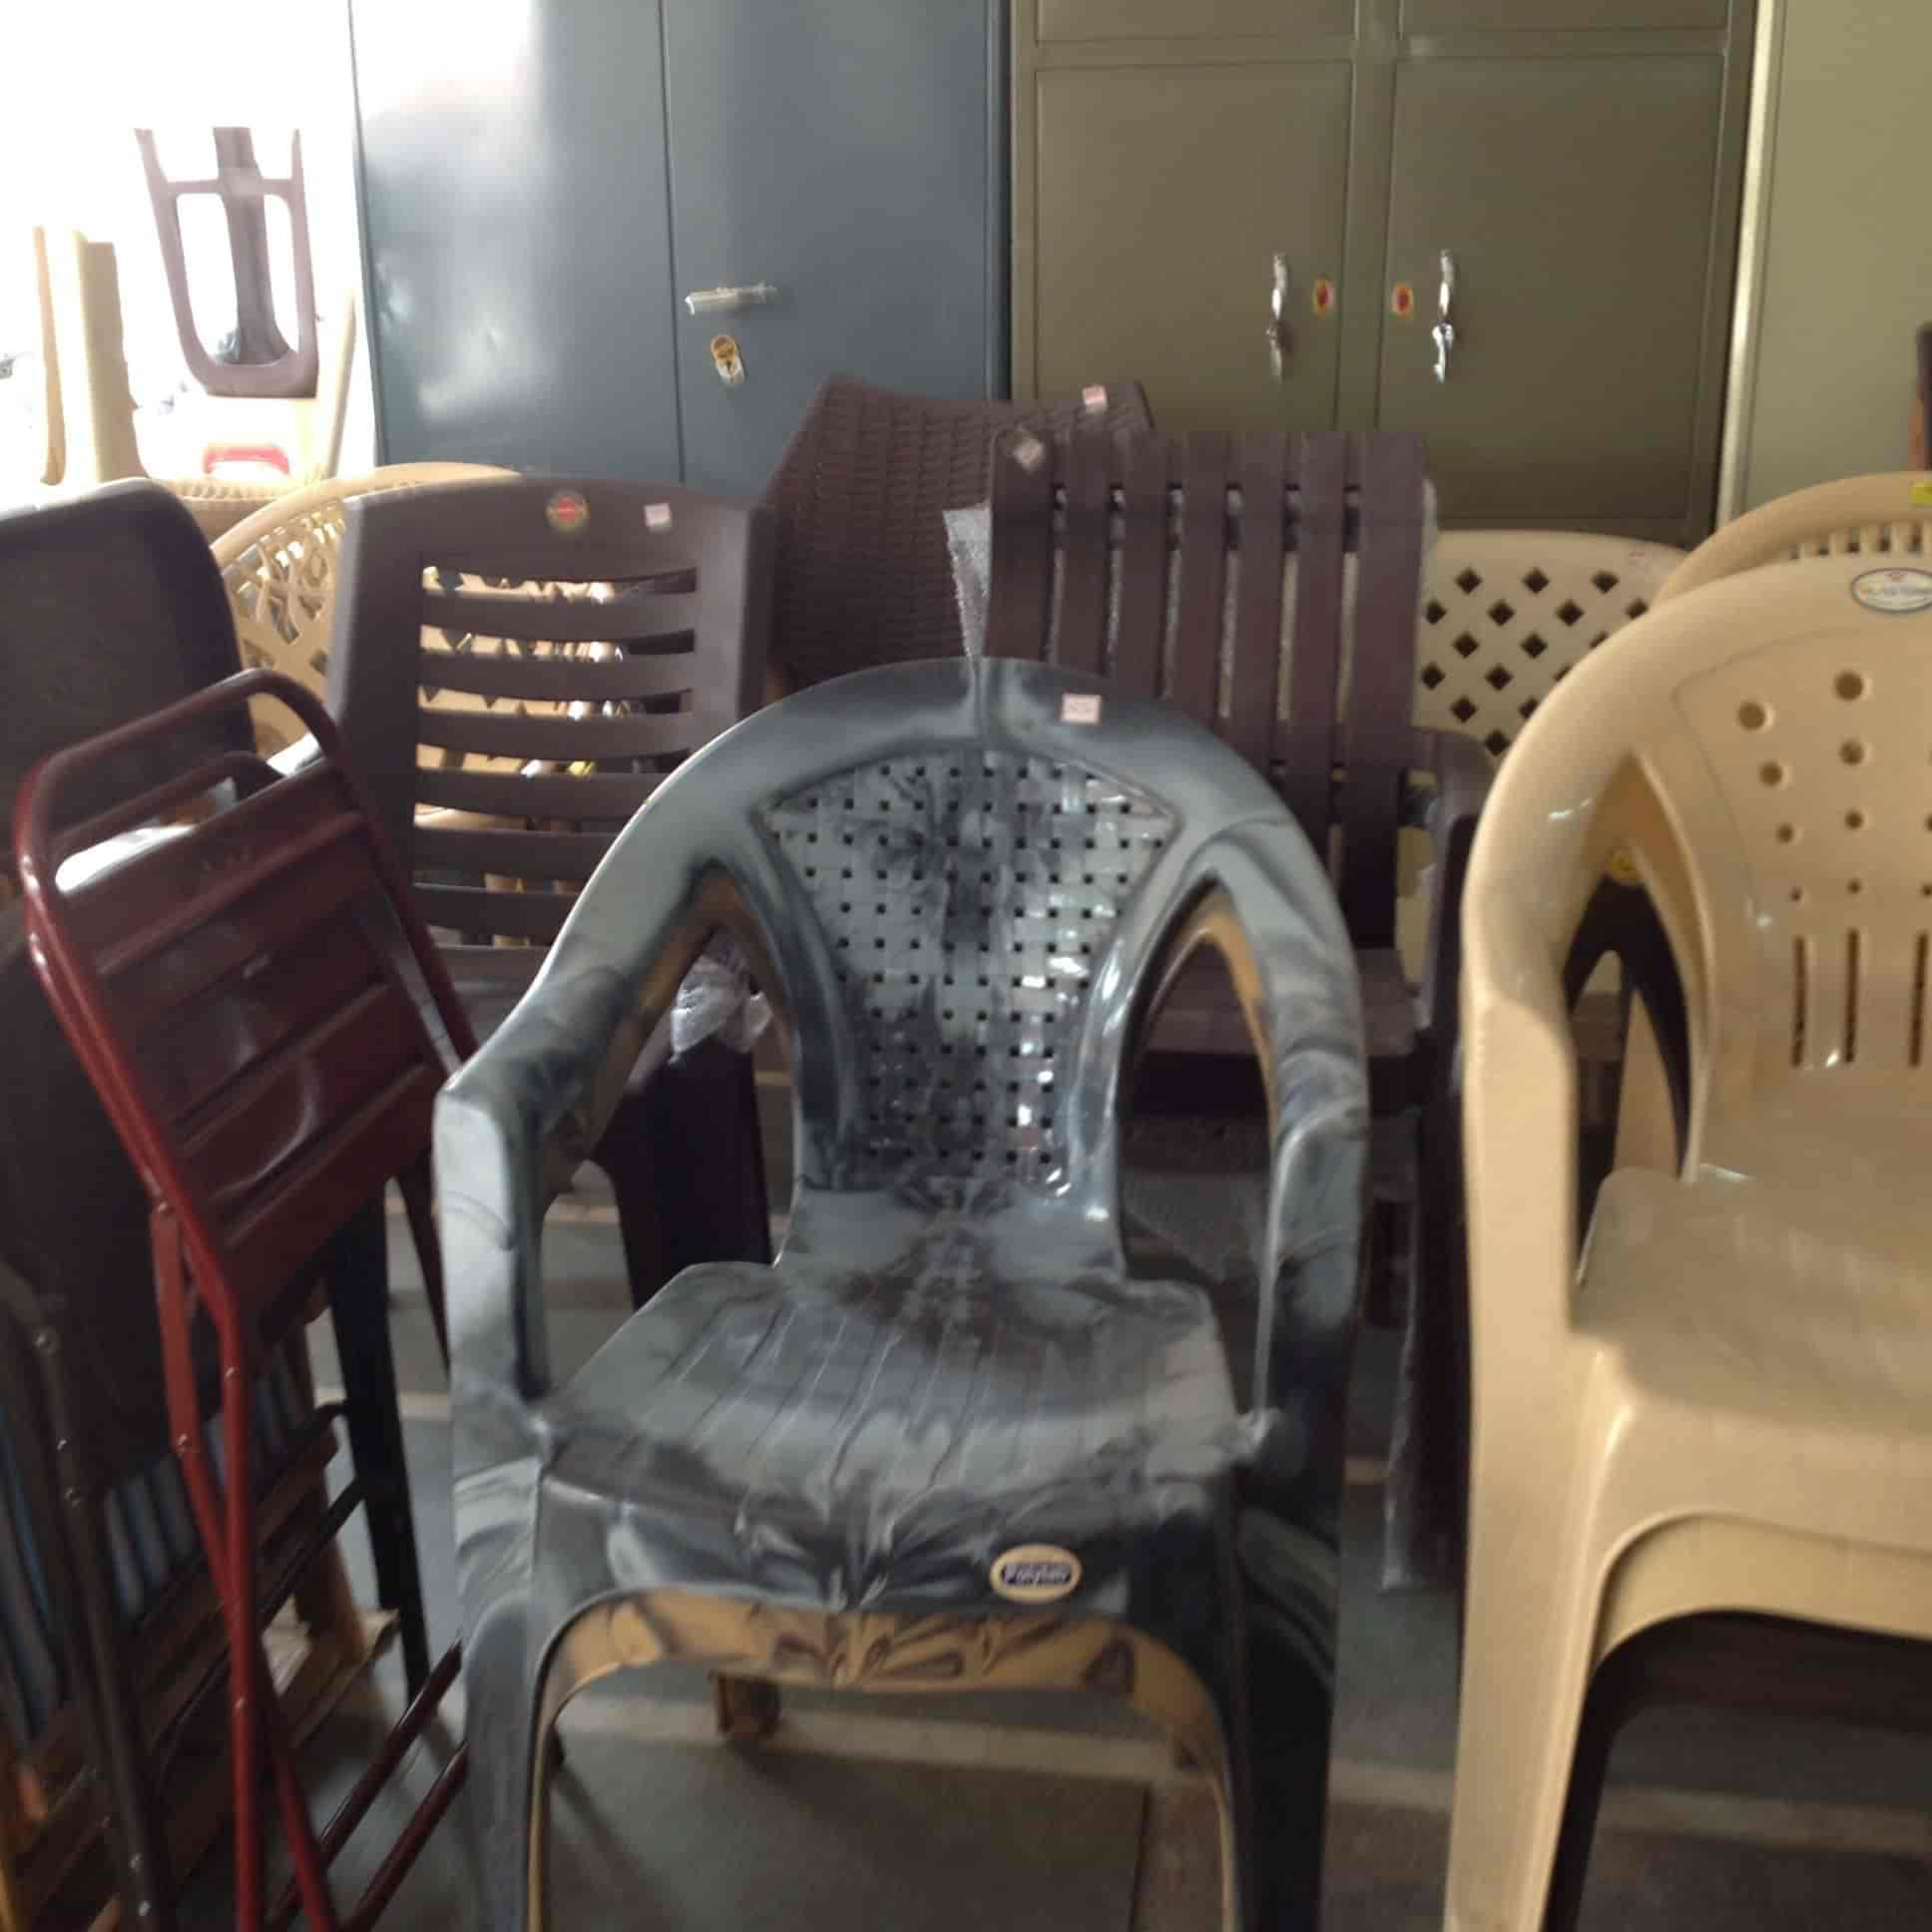 Tip top furniture mangnath road furniture dealers in junagadh justdial